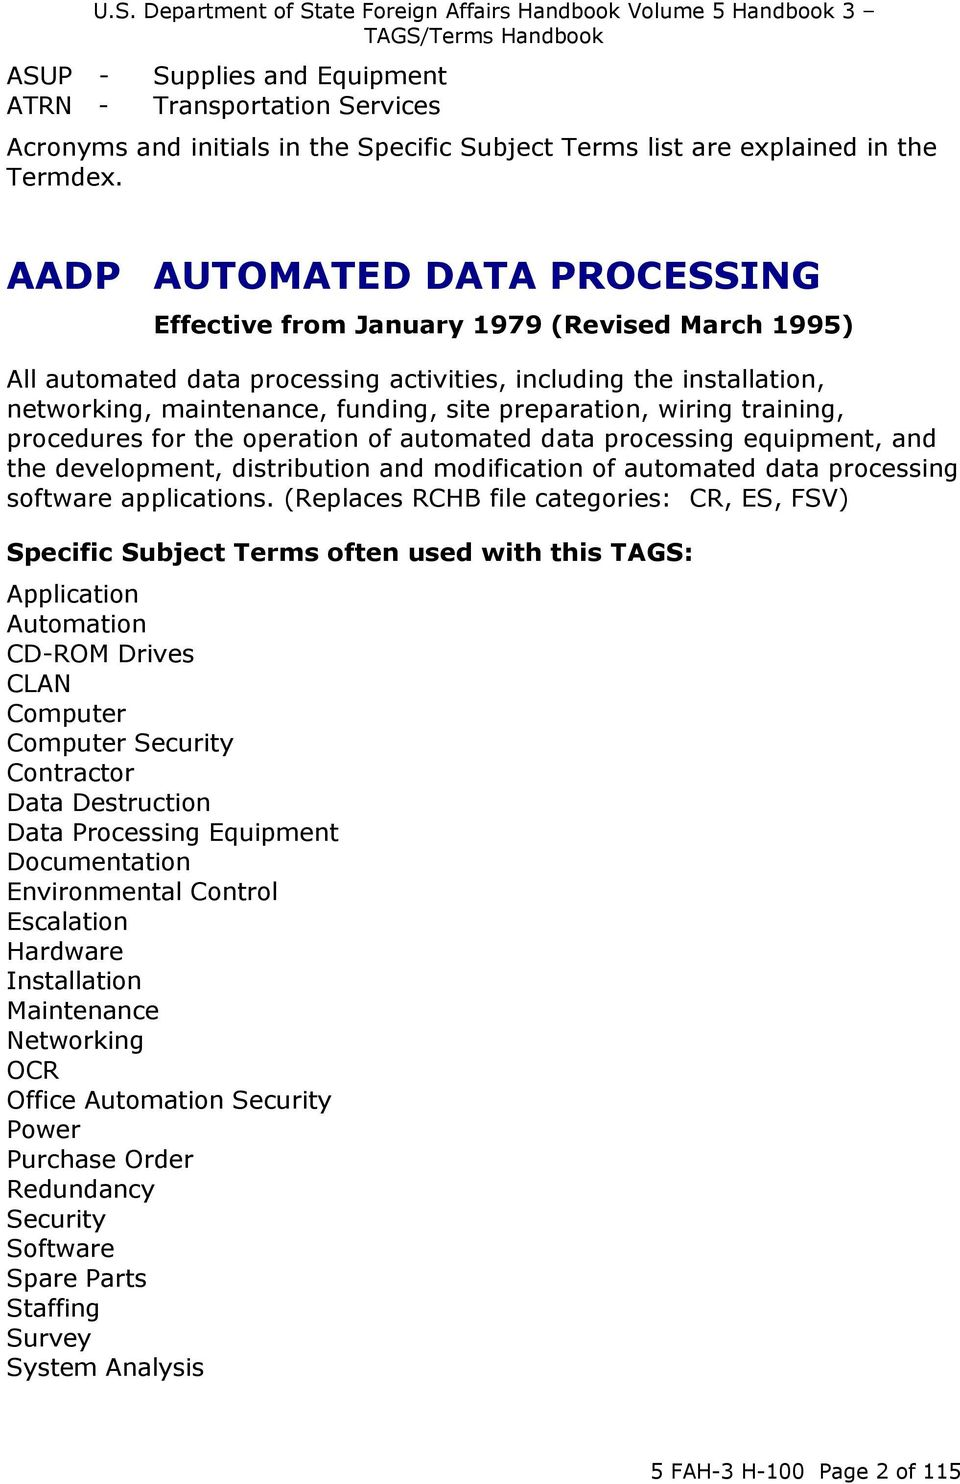 preparation, wiring training, procedures for the operation of automated data processing equipment, and the development, distribution and modification of automated data processing software